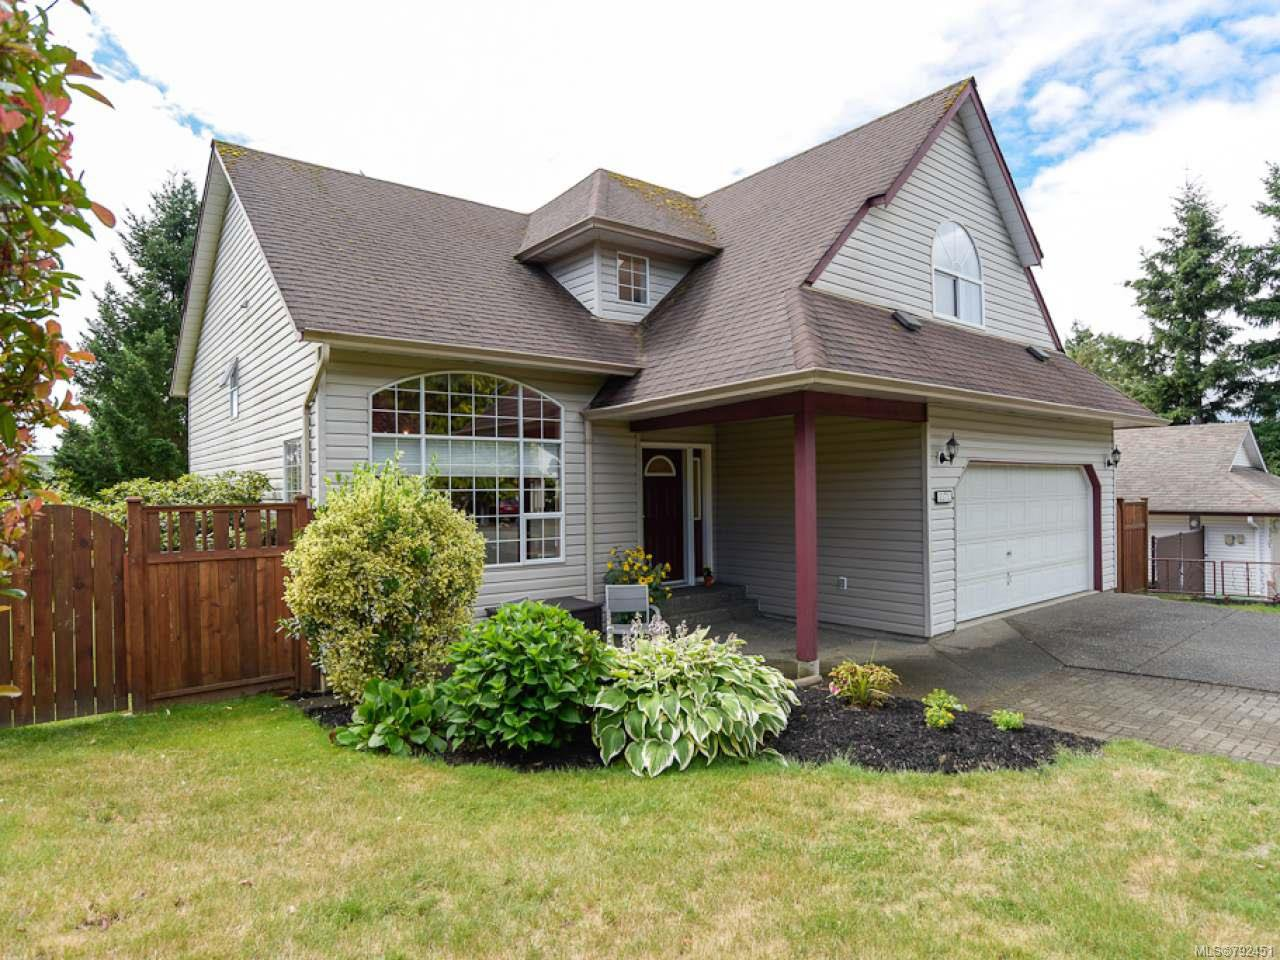 Main Photo: 1171 ZEBALLOS DRIVE in COURTENAY: CV Courtenay East House for sale (Comox Valley)  : MLS®# 792451